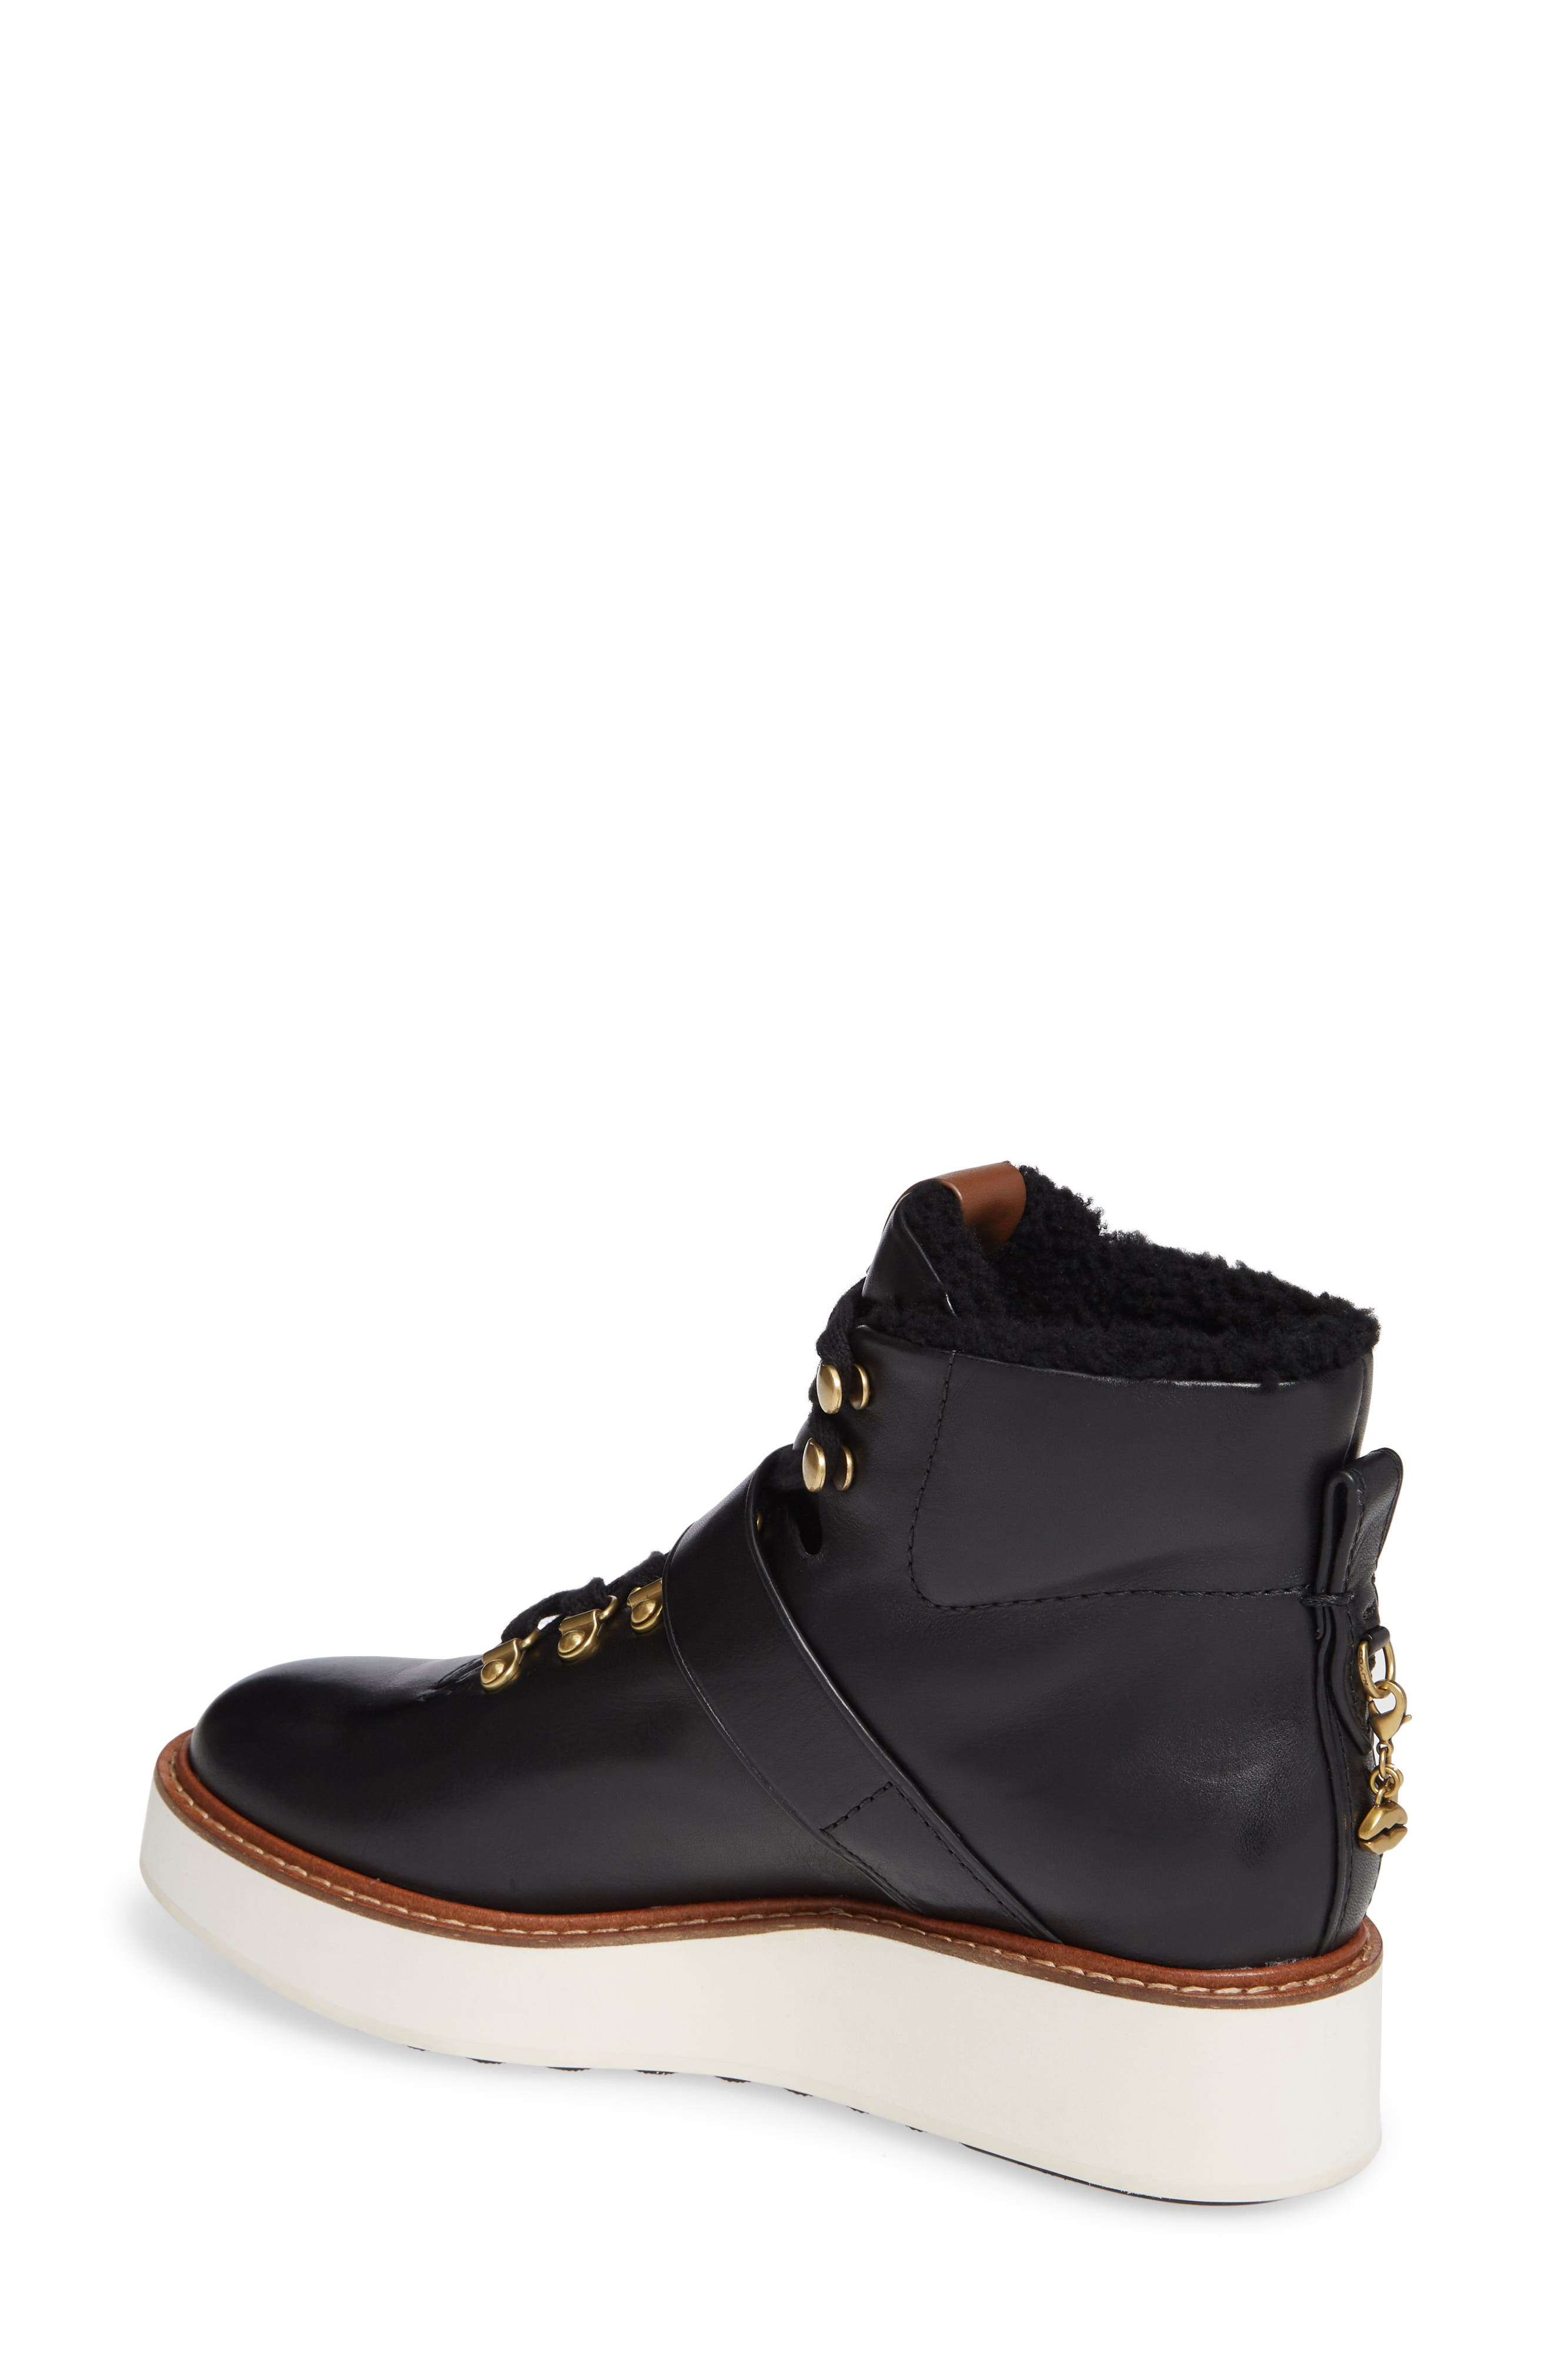 Urban Hiker Genuine Shearling Lined Bootie,                             Alternate thumbnail 2, color,                             001